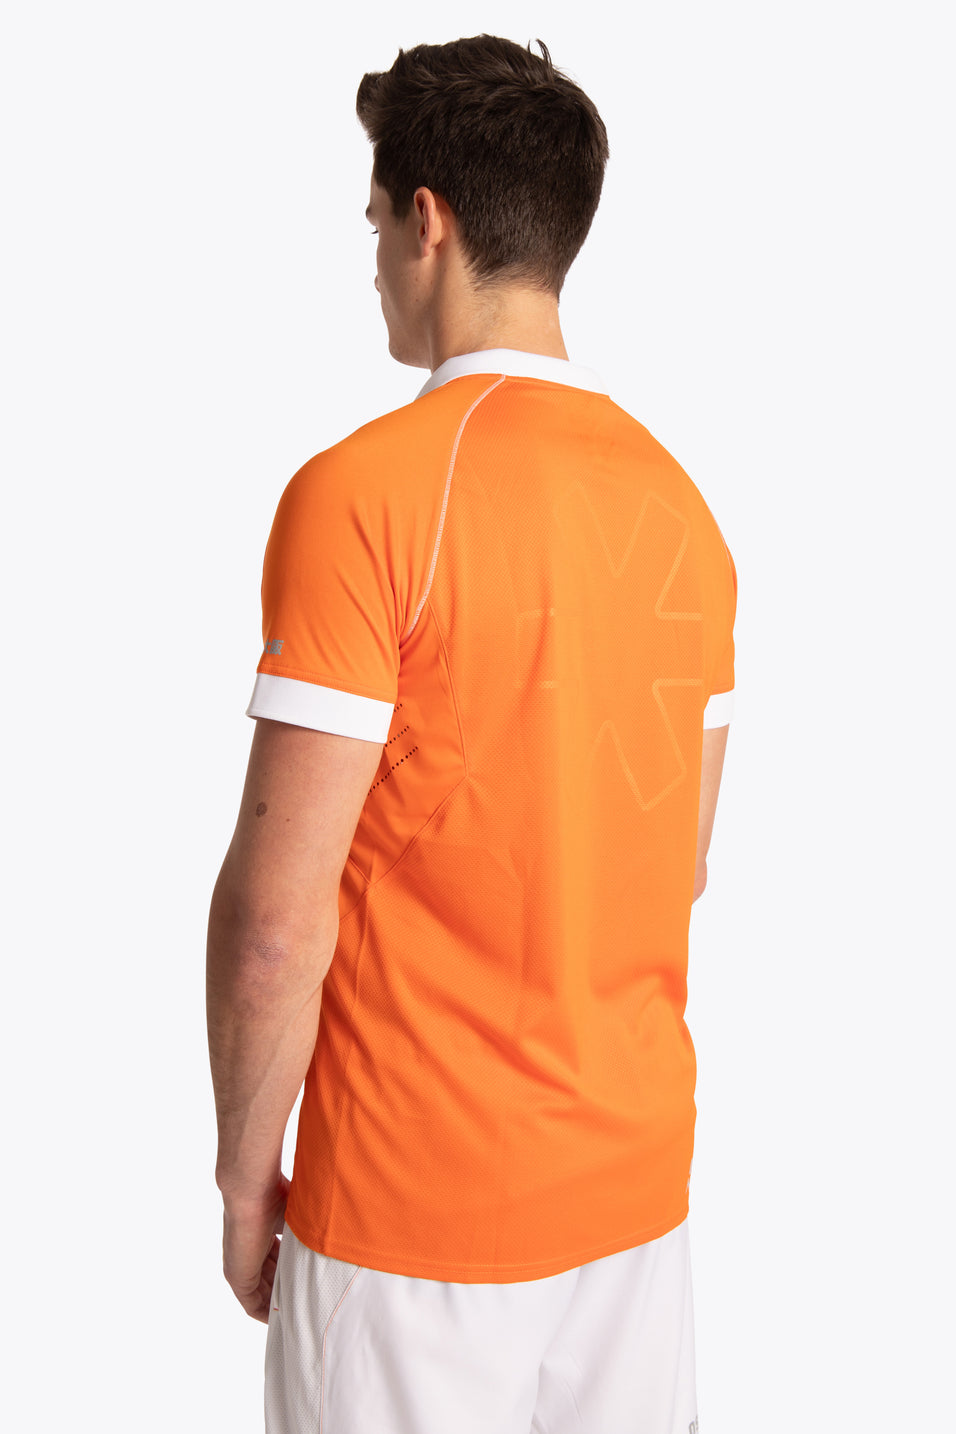 HC Bloemendaal Men Polo Jersey - Orange